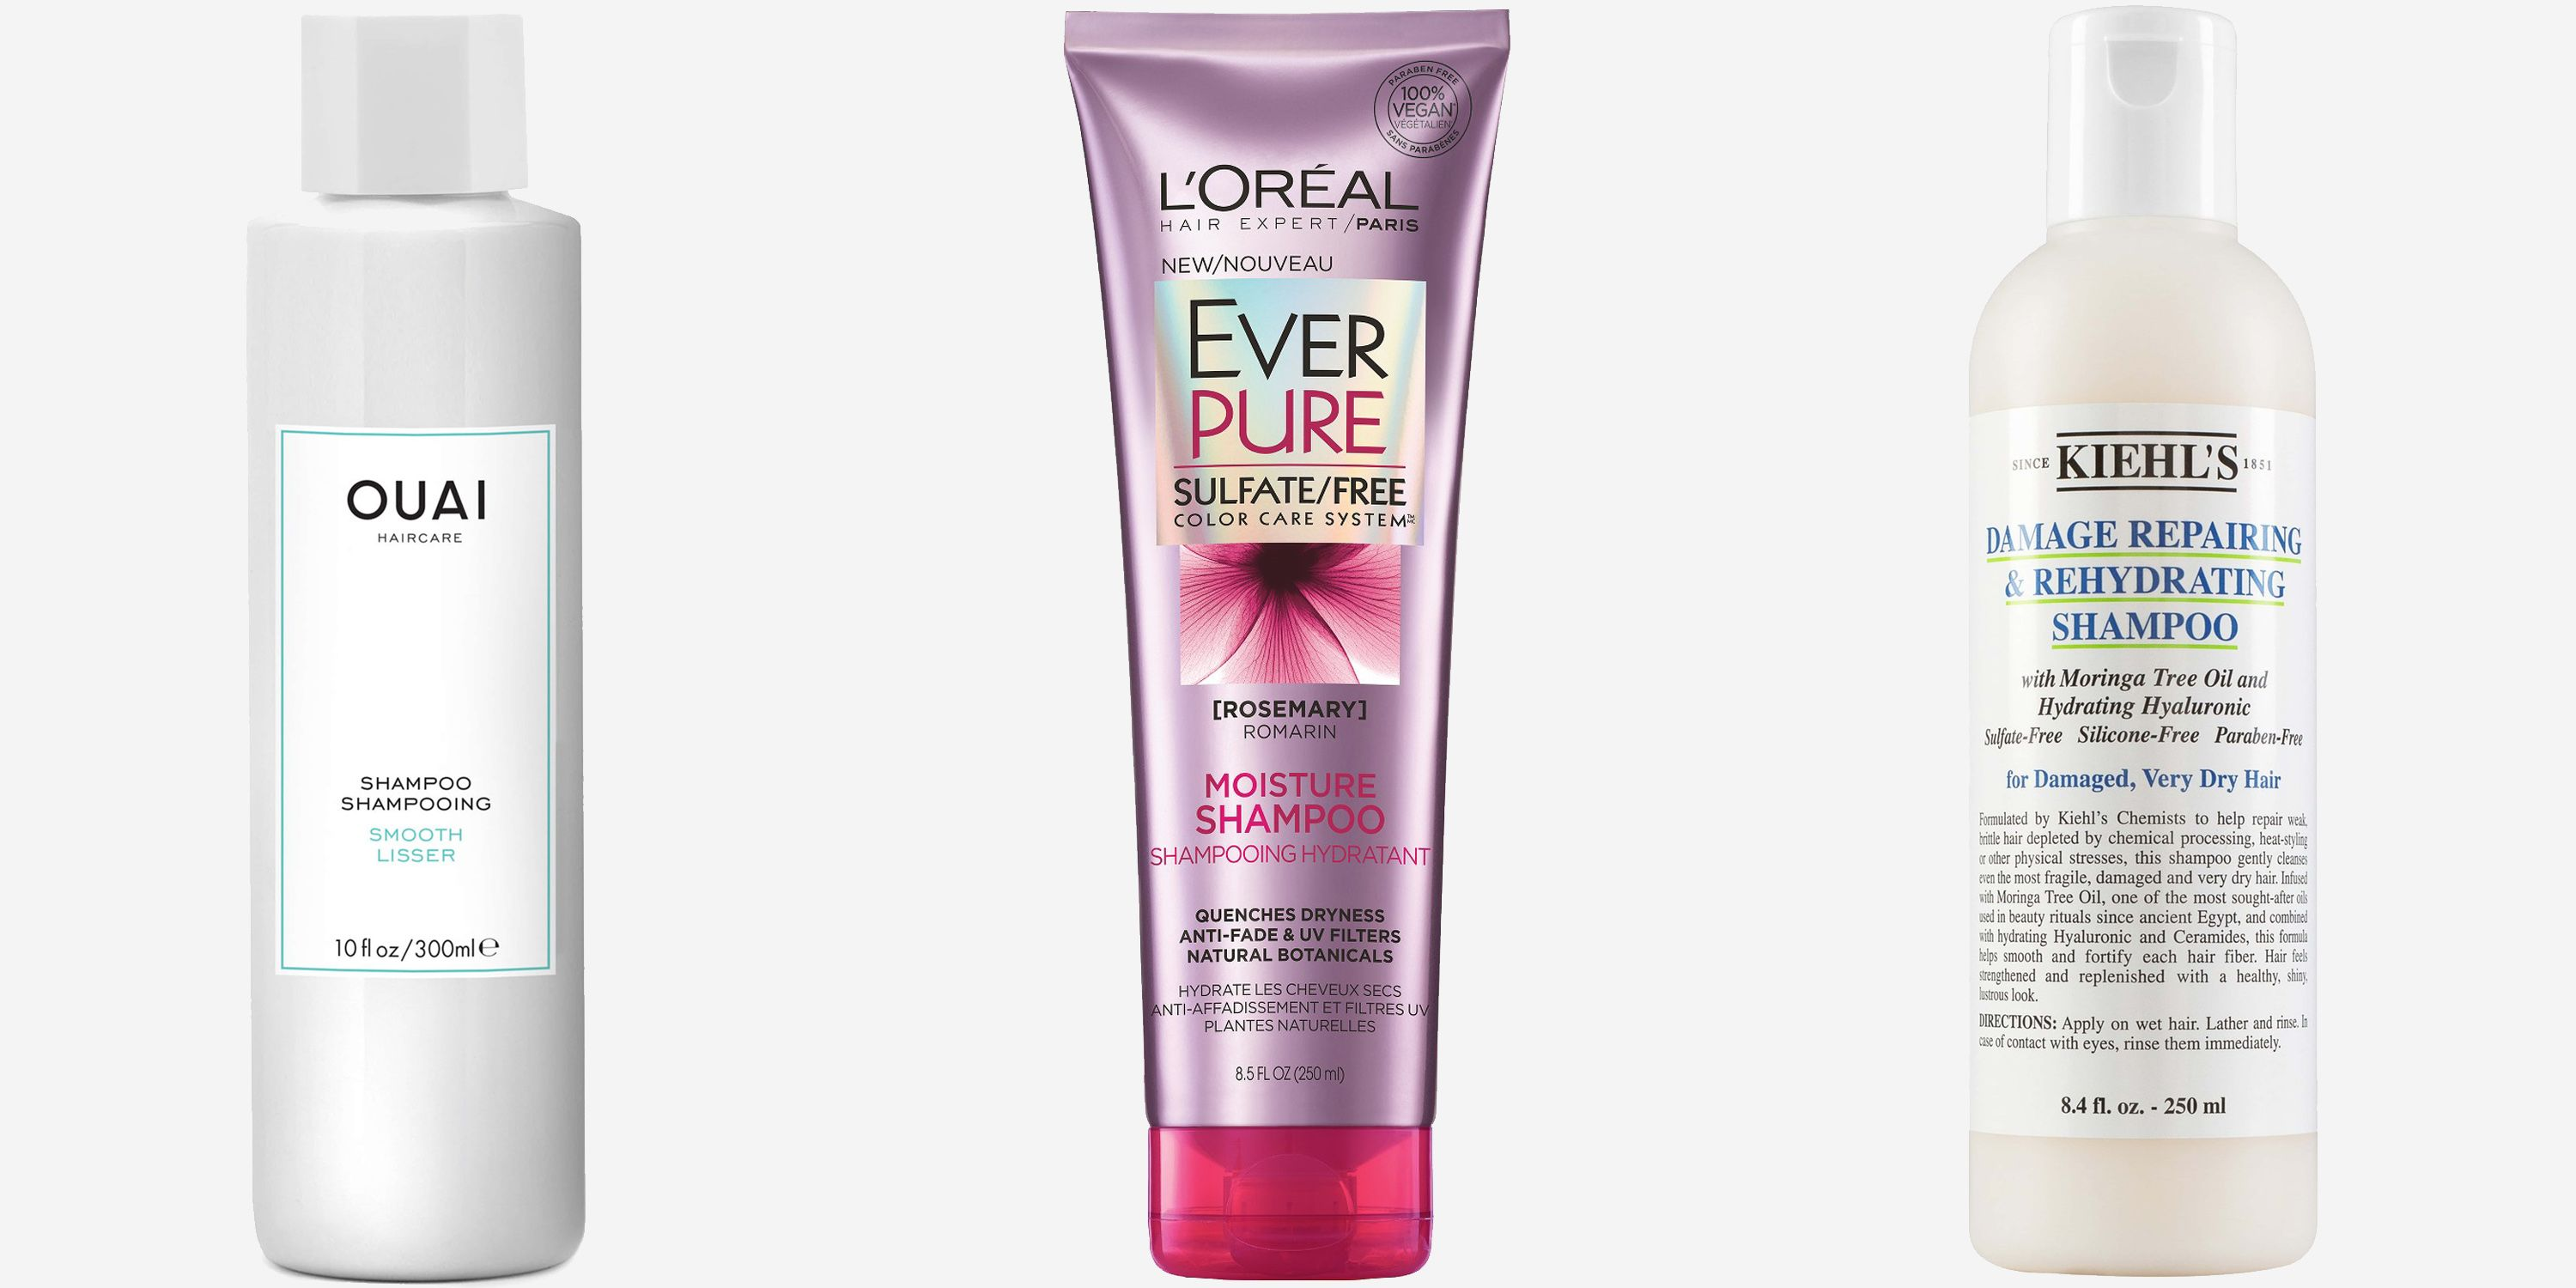 15 Best Sulfate Free Shampoos 2018 - Top Shampoos Without